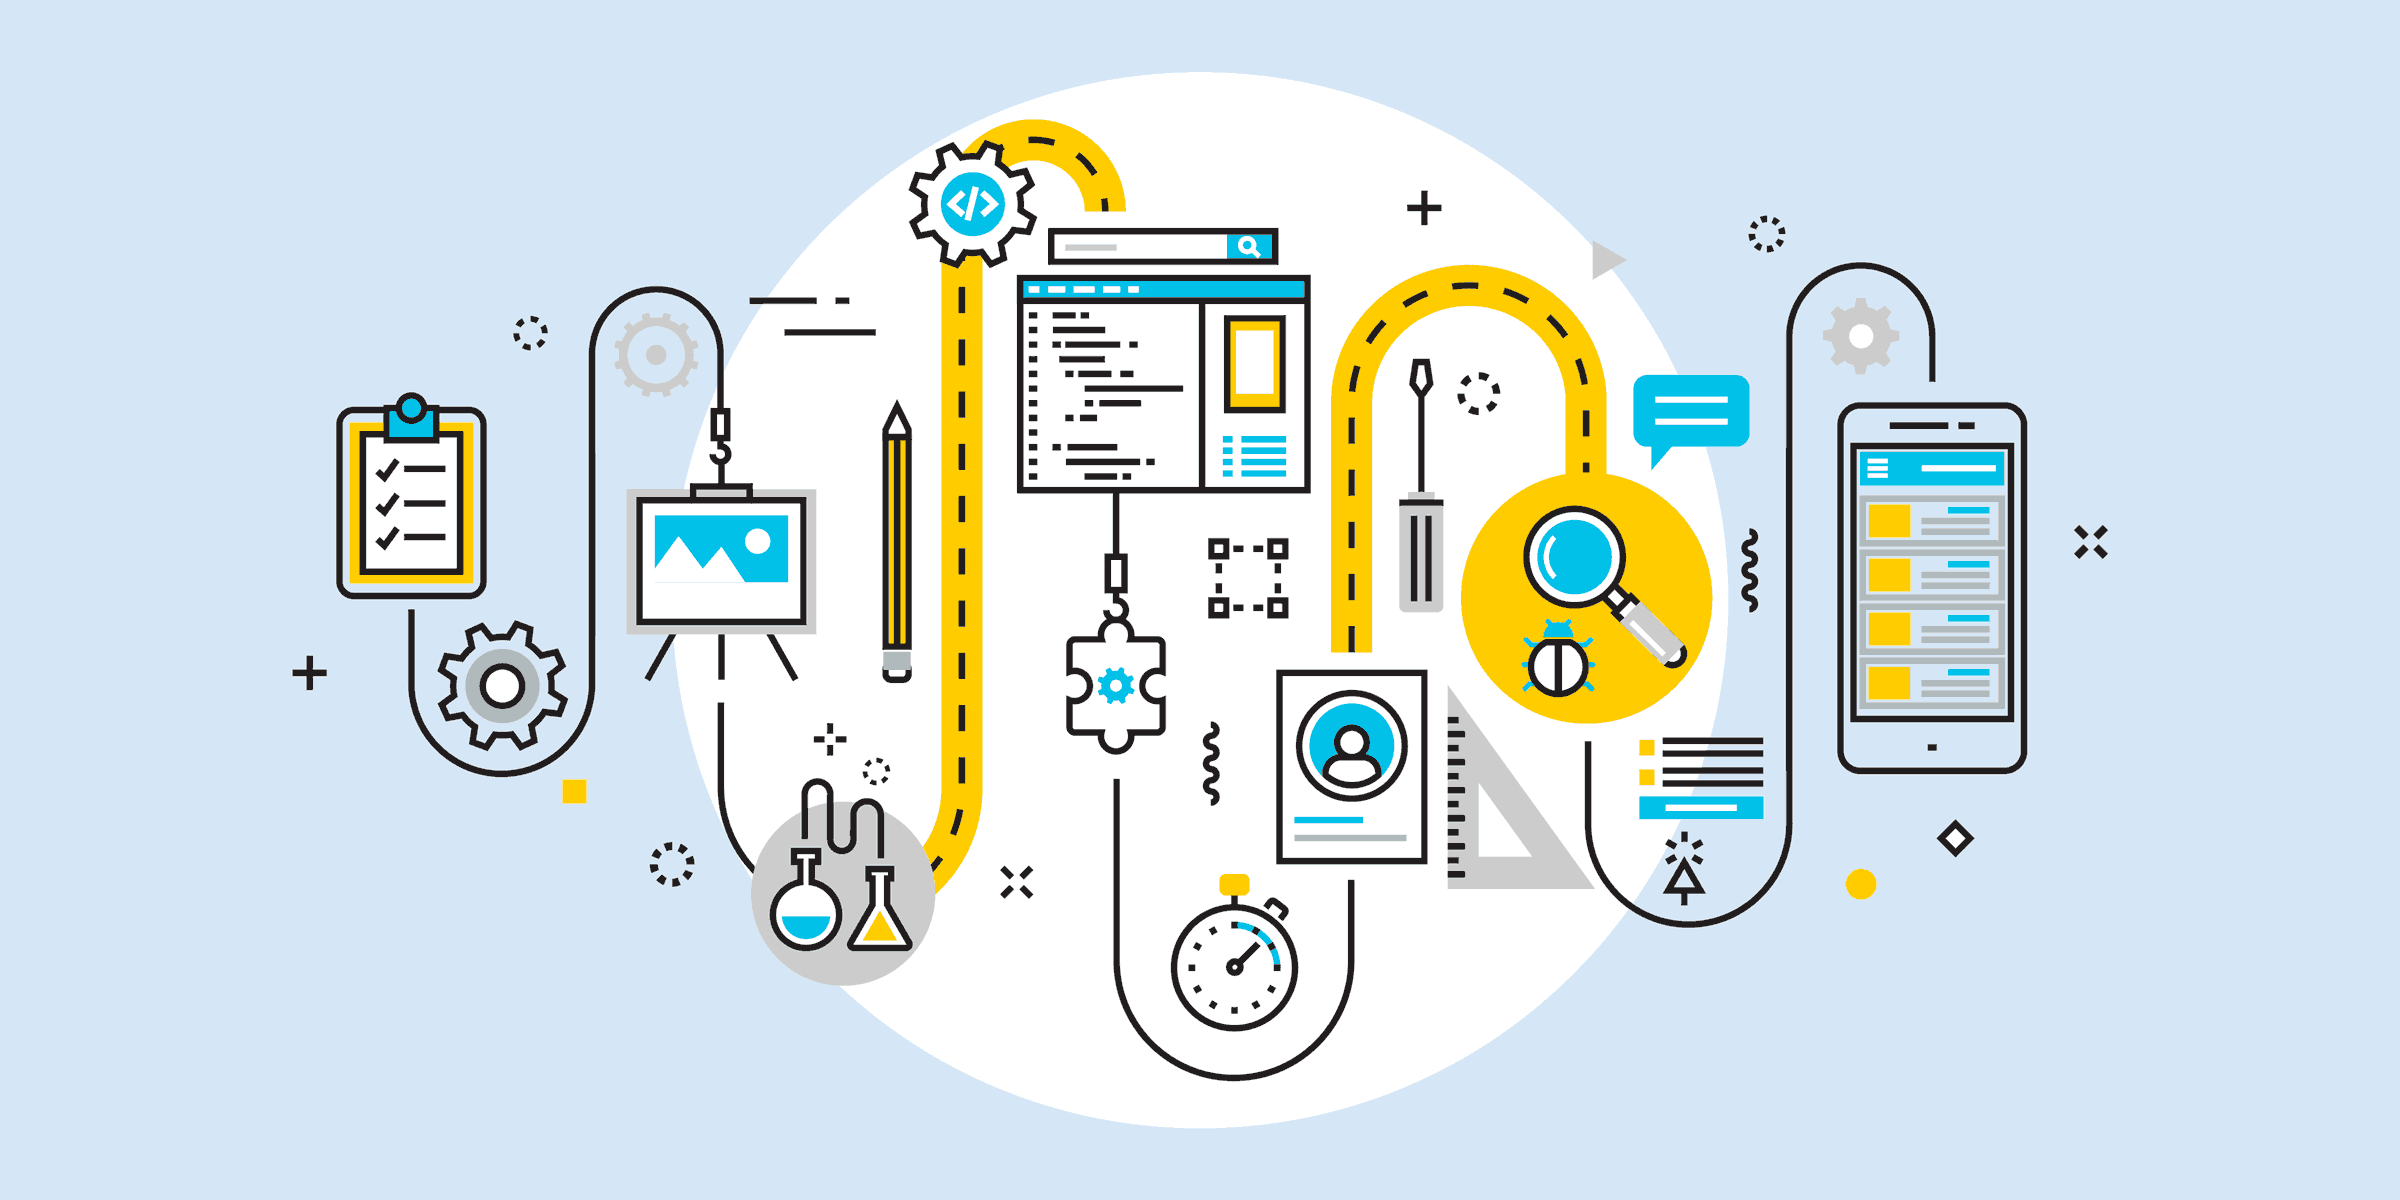 illustration of many icons such as a clipboard, gear, easel, lab flasks, pencil, file directory, stopwatch, profile, screwdriver, straightedge, magnifying glass next to a bug, screenshot, and cell phone, representing nonprofit software tools